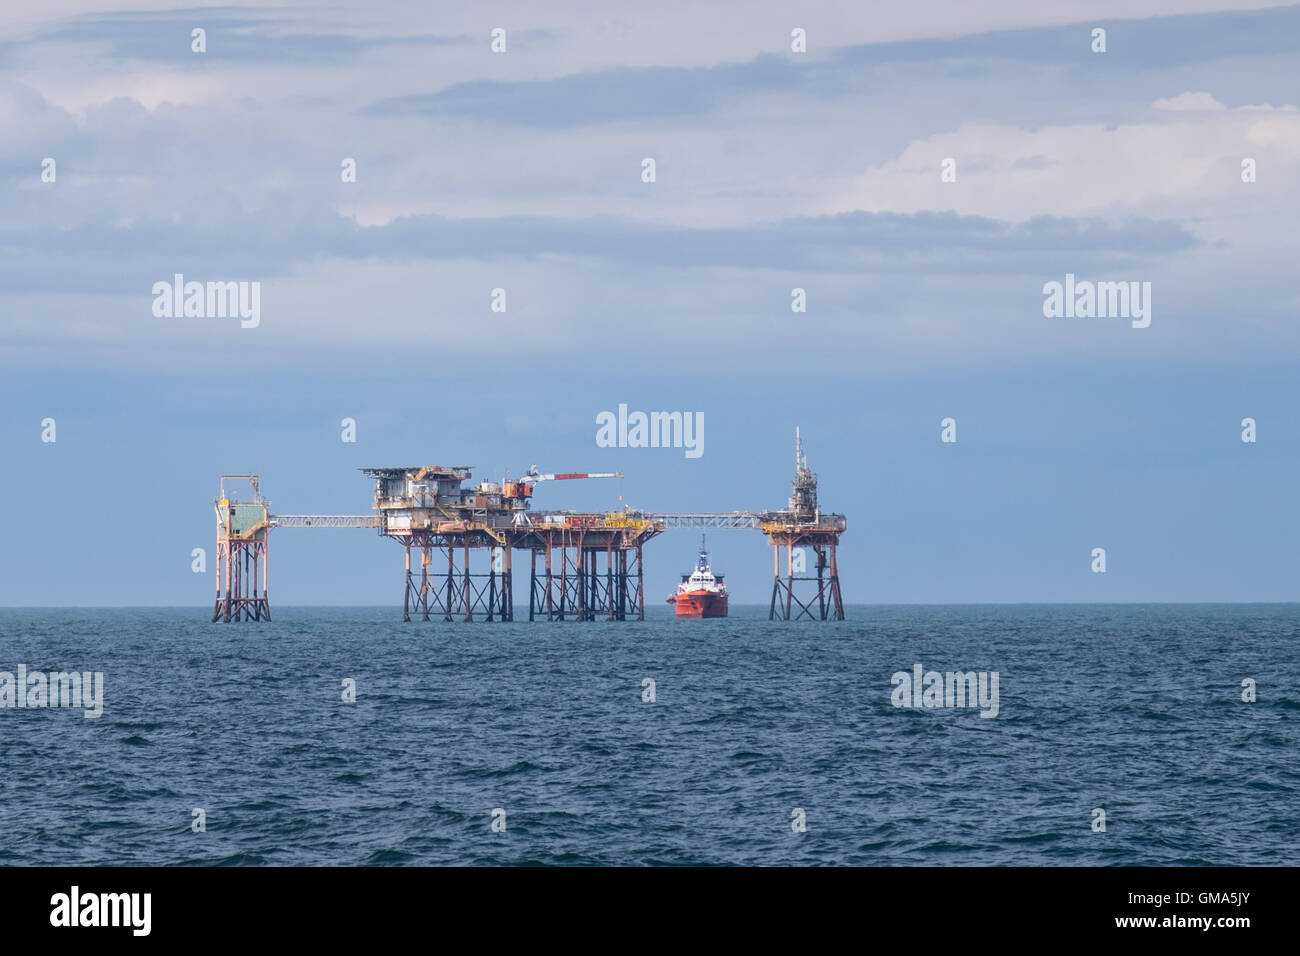 The West Sole A oil platform complex in the North Sea - Stock Image